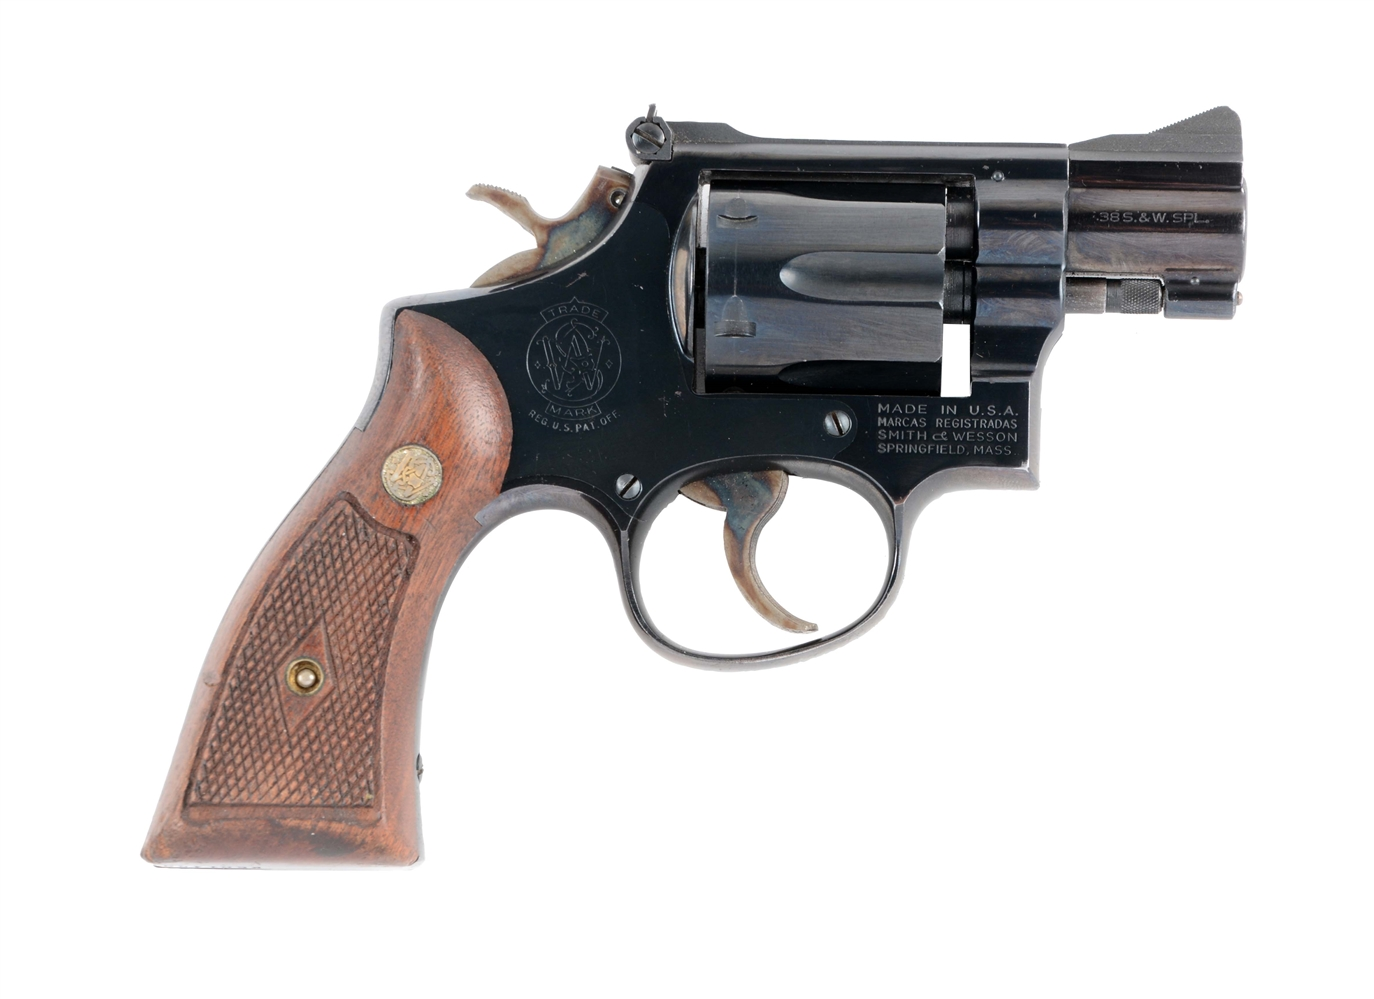 (C) U.S. Air Force Smith and Wesson Model 56 Double Action Revolver.